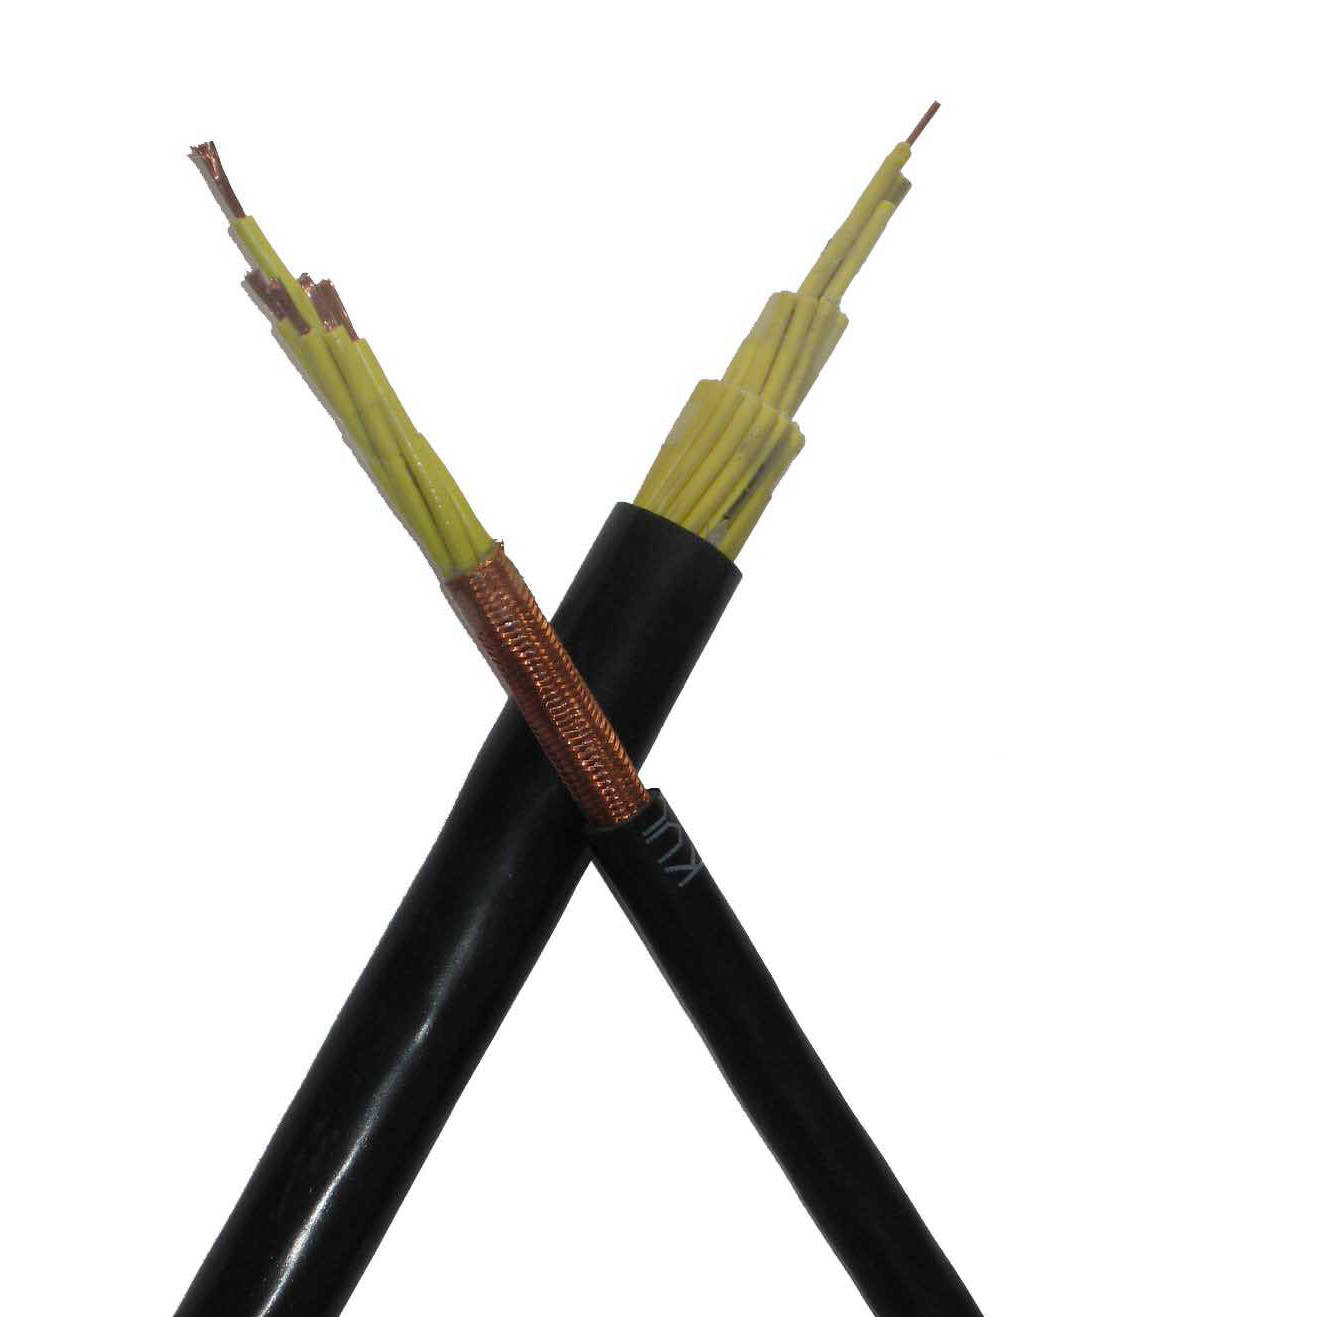 450/750V 2 Cores 0.75mm2 1mm2 2.5mm2 4mm2 6mm2 PVC Control Cable